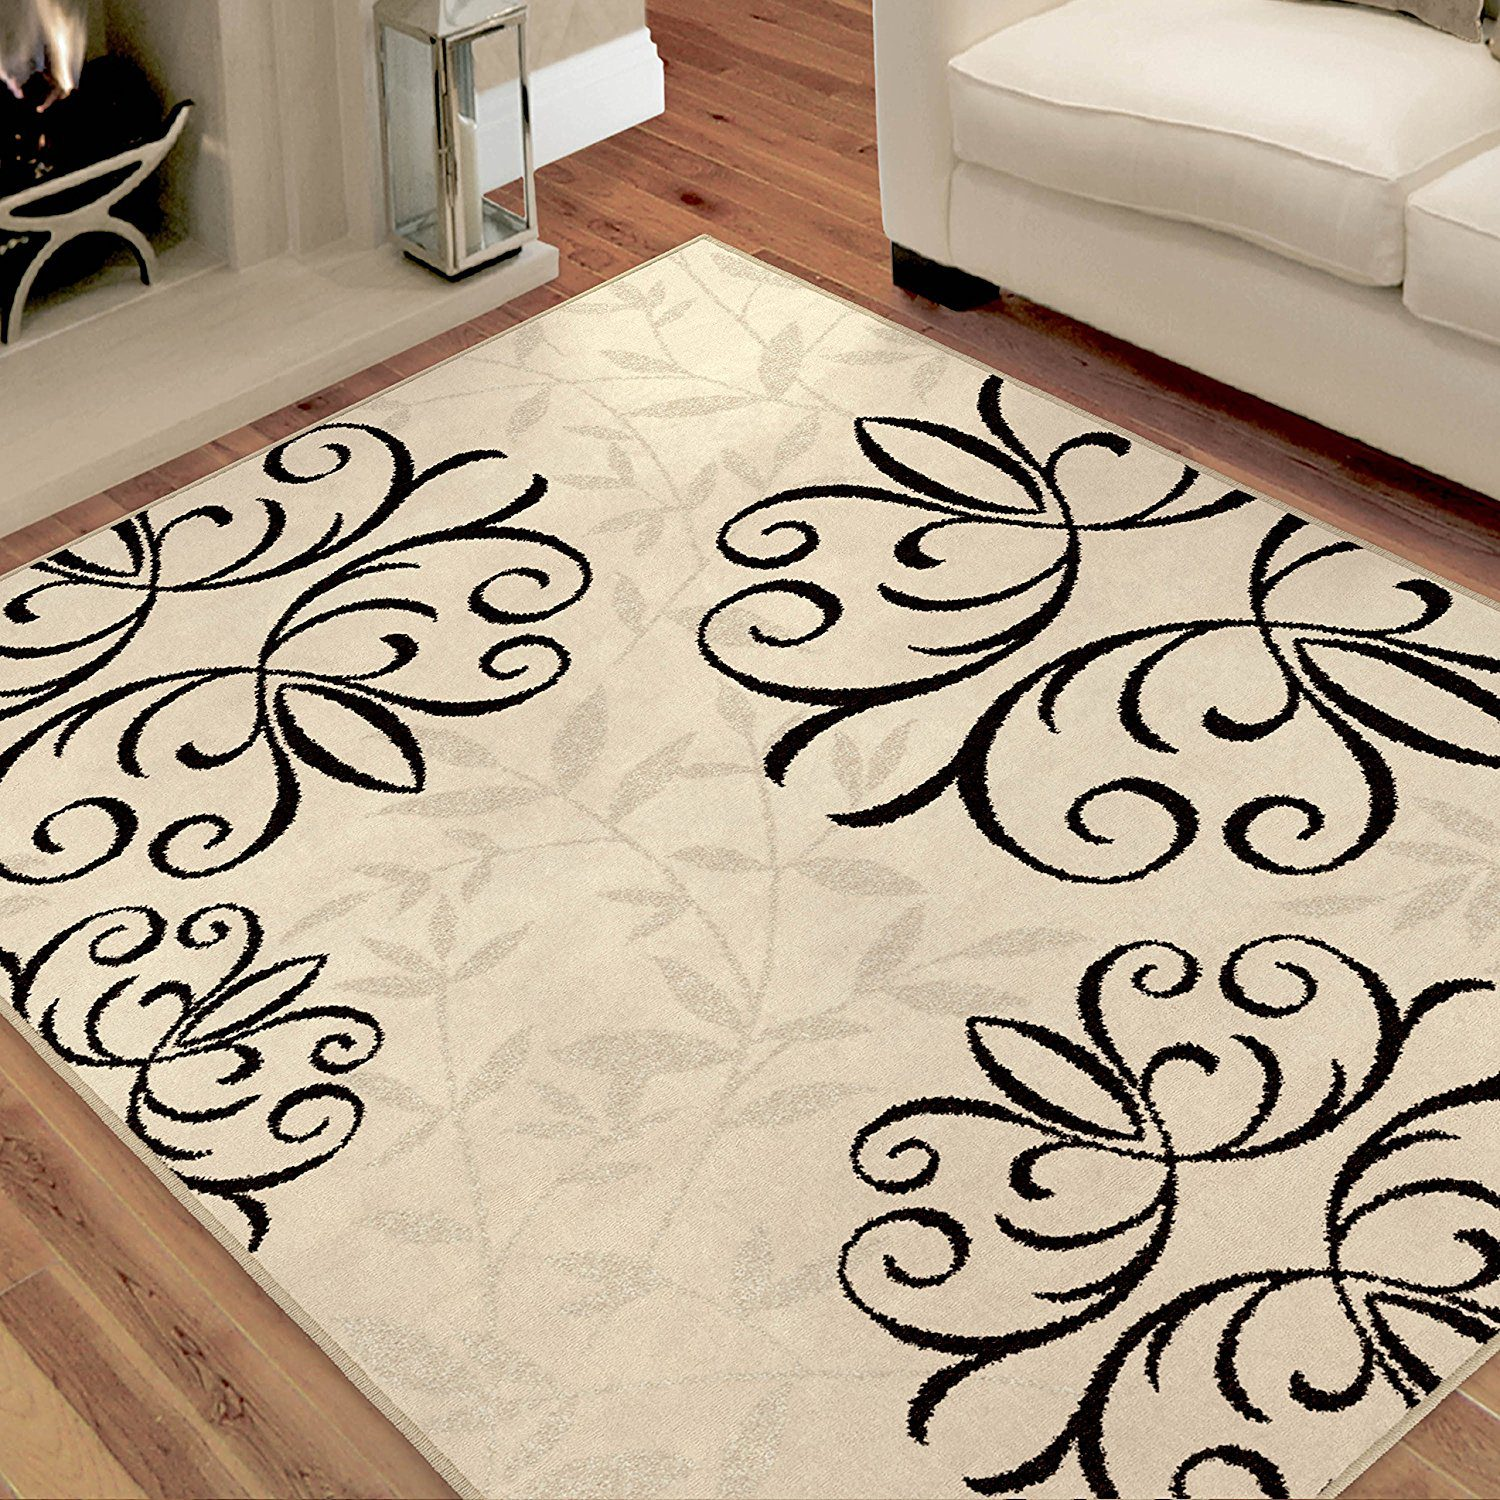 Deals finders amazon better homes and gardens iron - Better homes and gardens iron fleur area rug ...